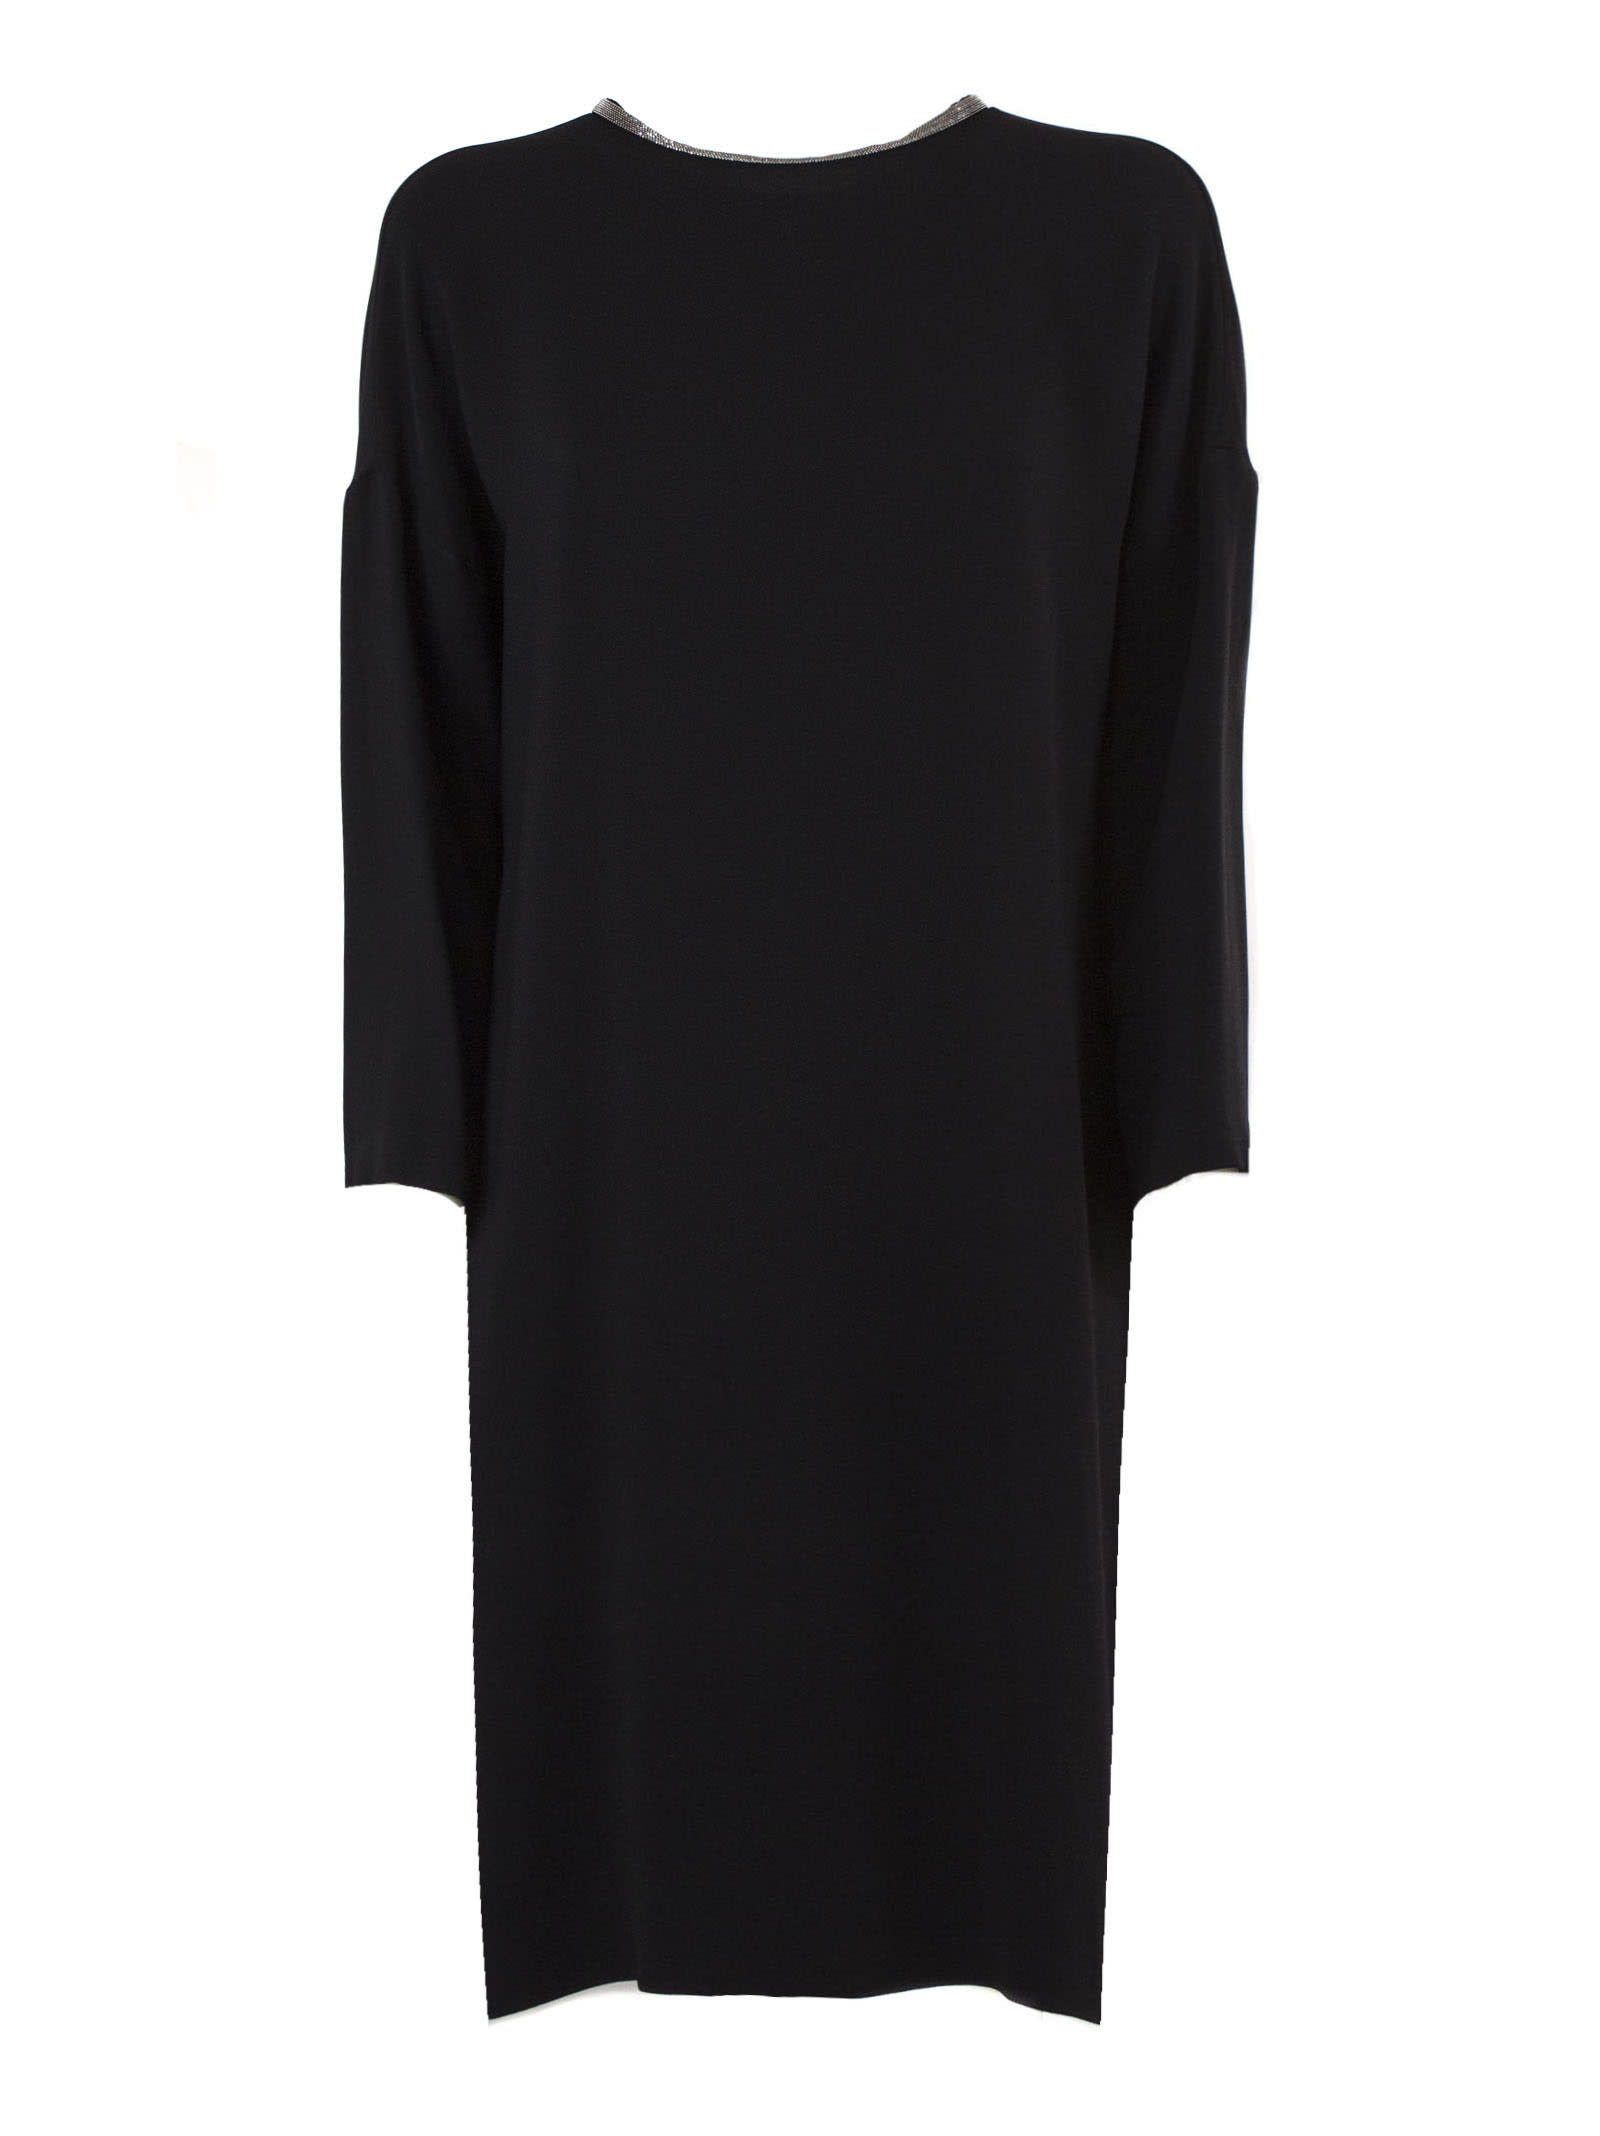 Fabiana Filippi Black Viscose Dress